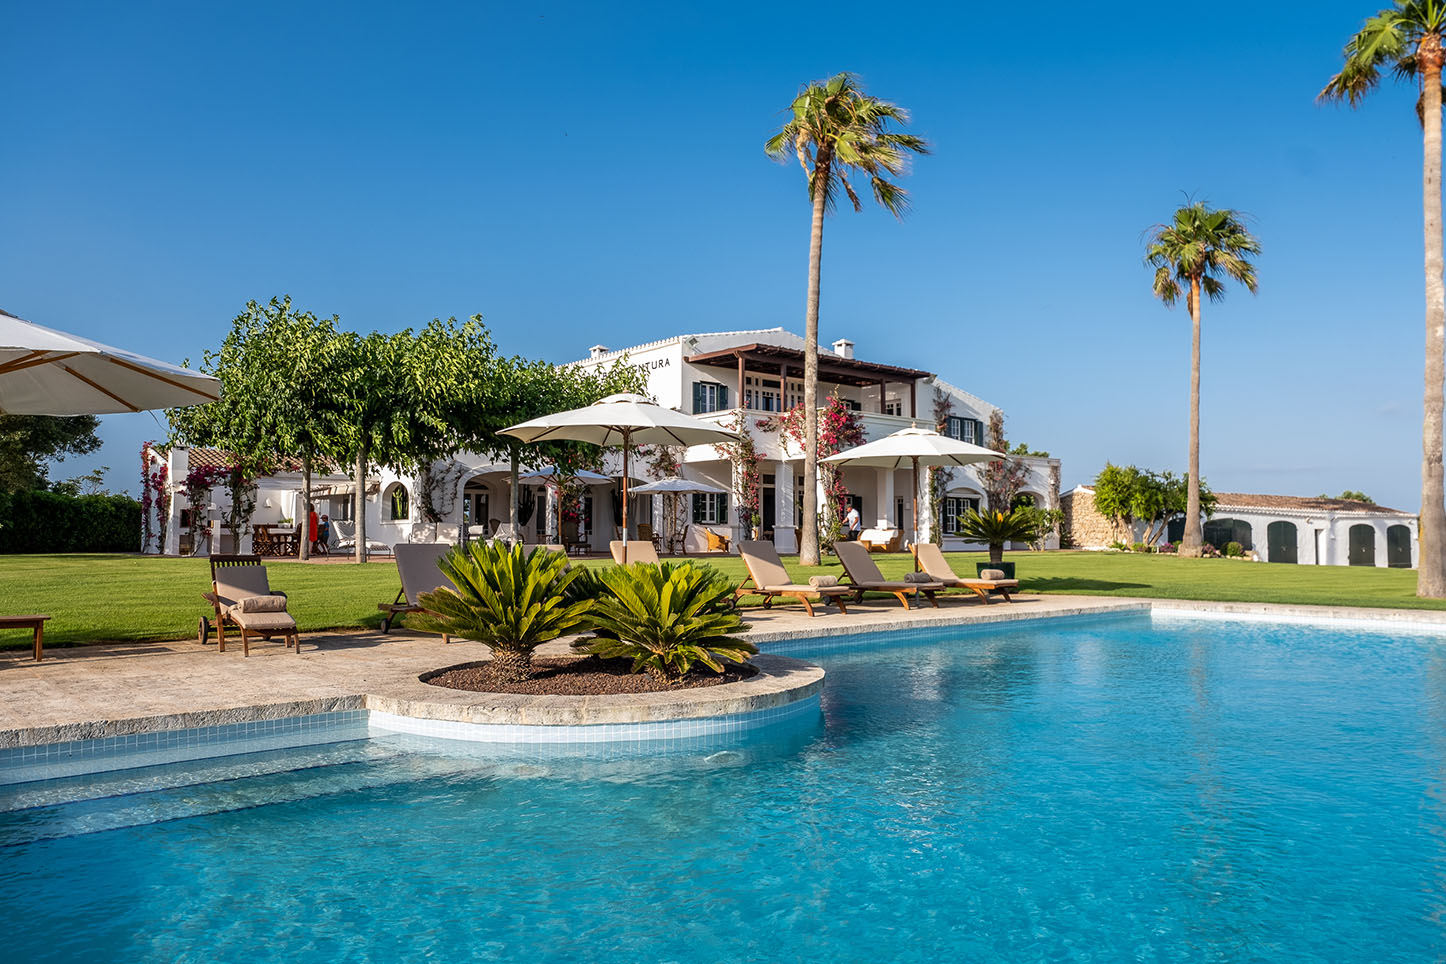 Ultra luxury villa to rent in menorca. Past guests include Michelle Obama.